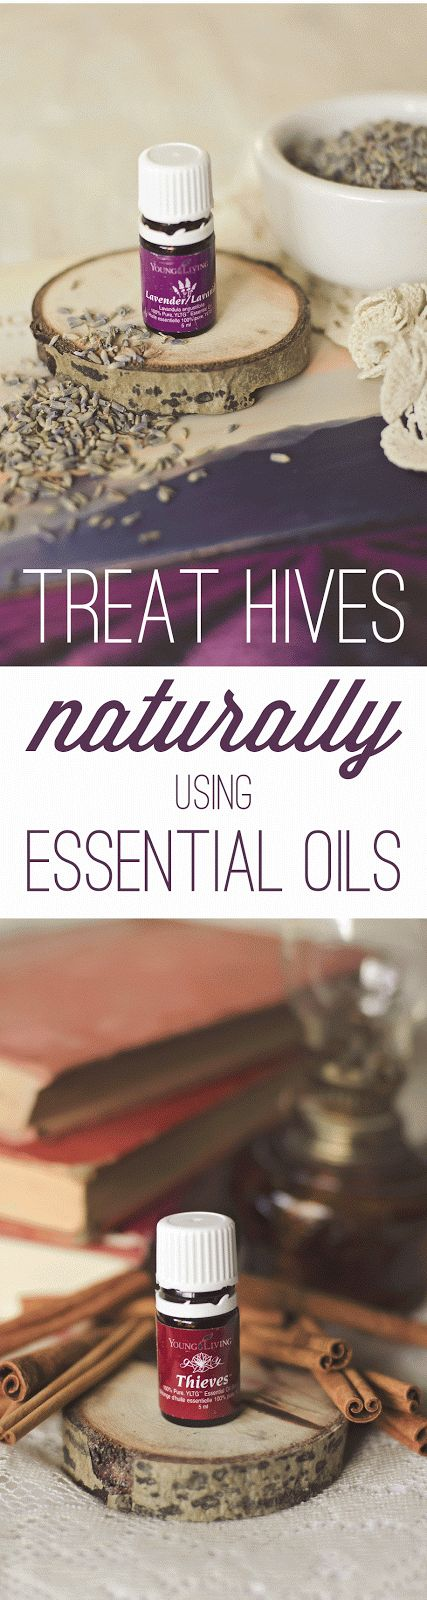 the Ash Tree Collective: Treating Hives with Essential Oils | Young Living | Holistic Healing